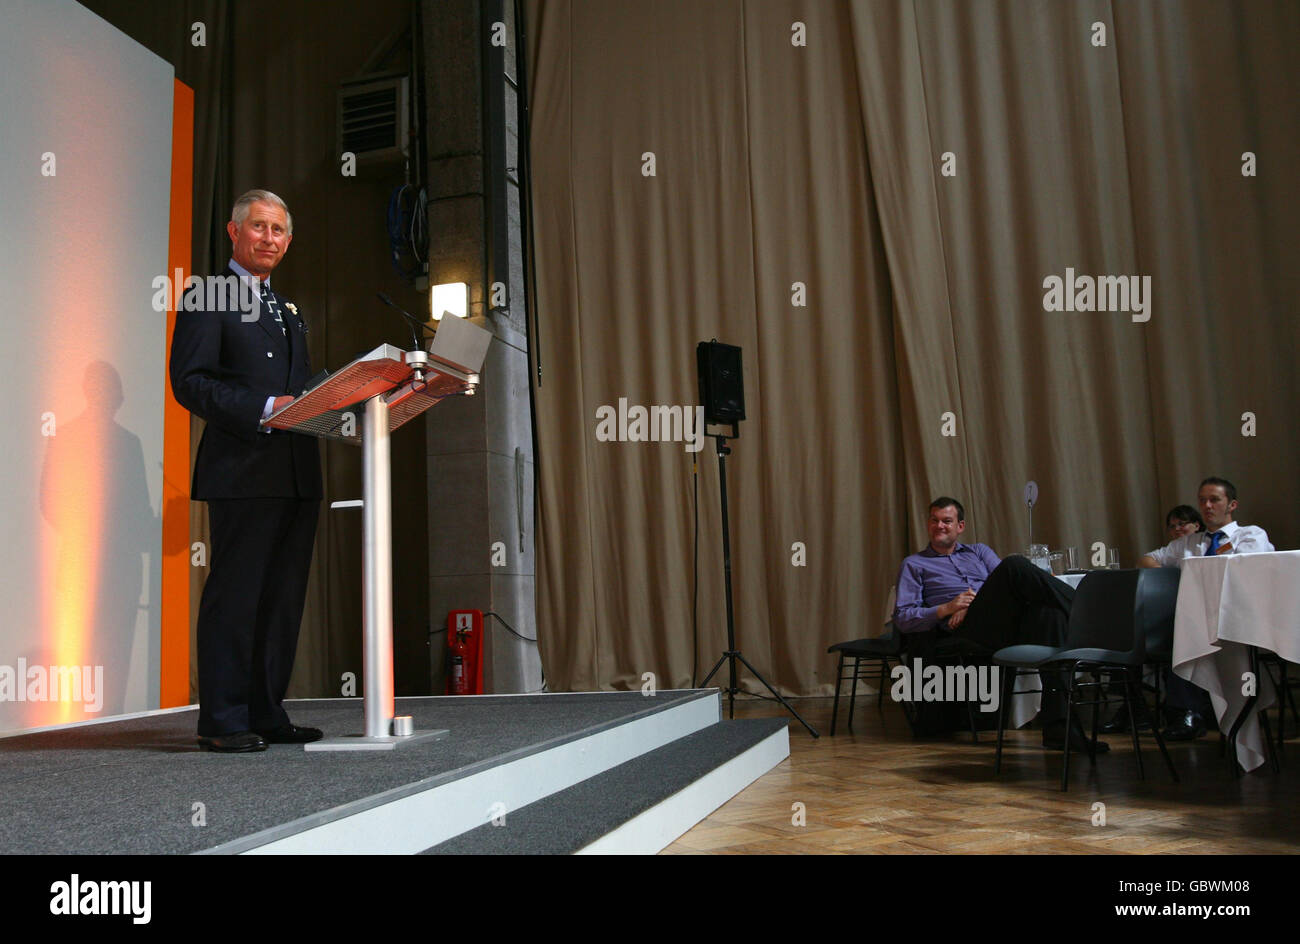 Charles attends Sustainable Development Commission conference - Stock Image